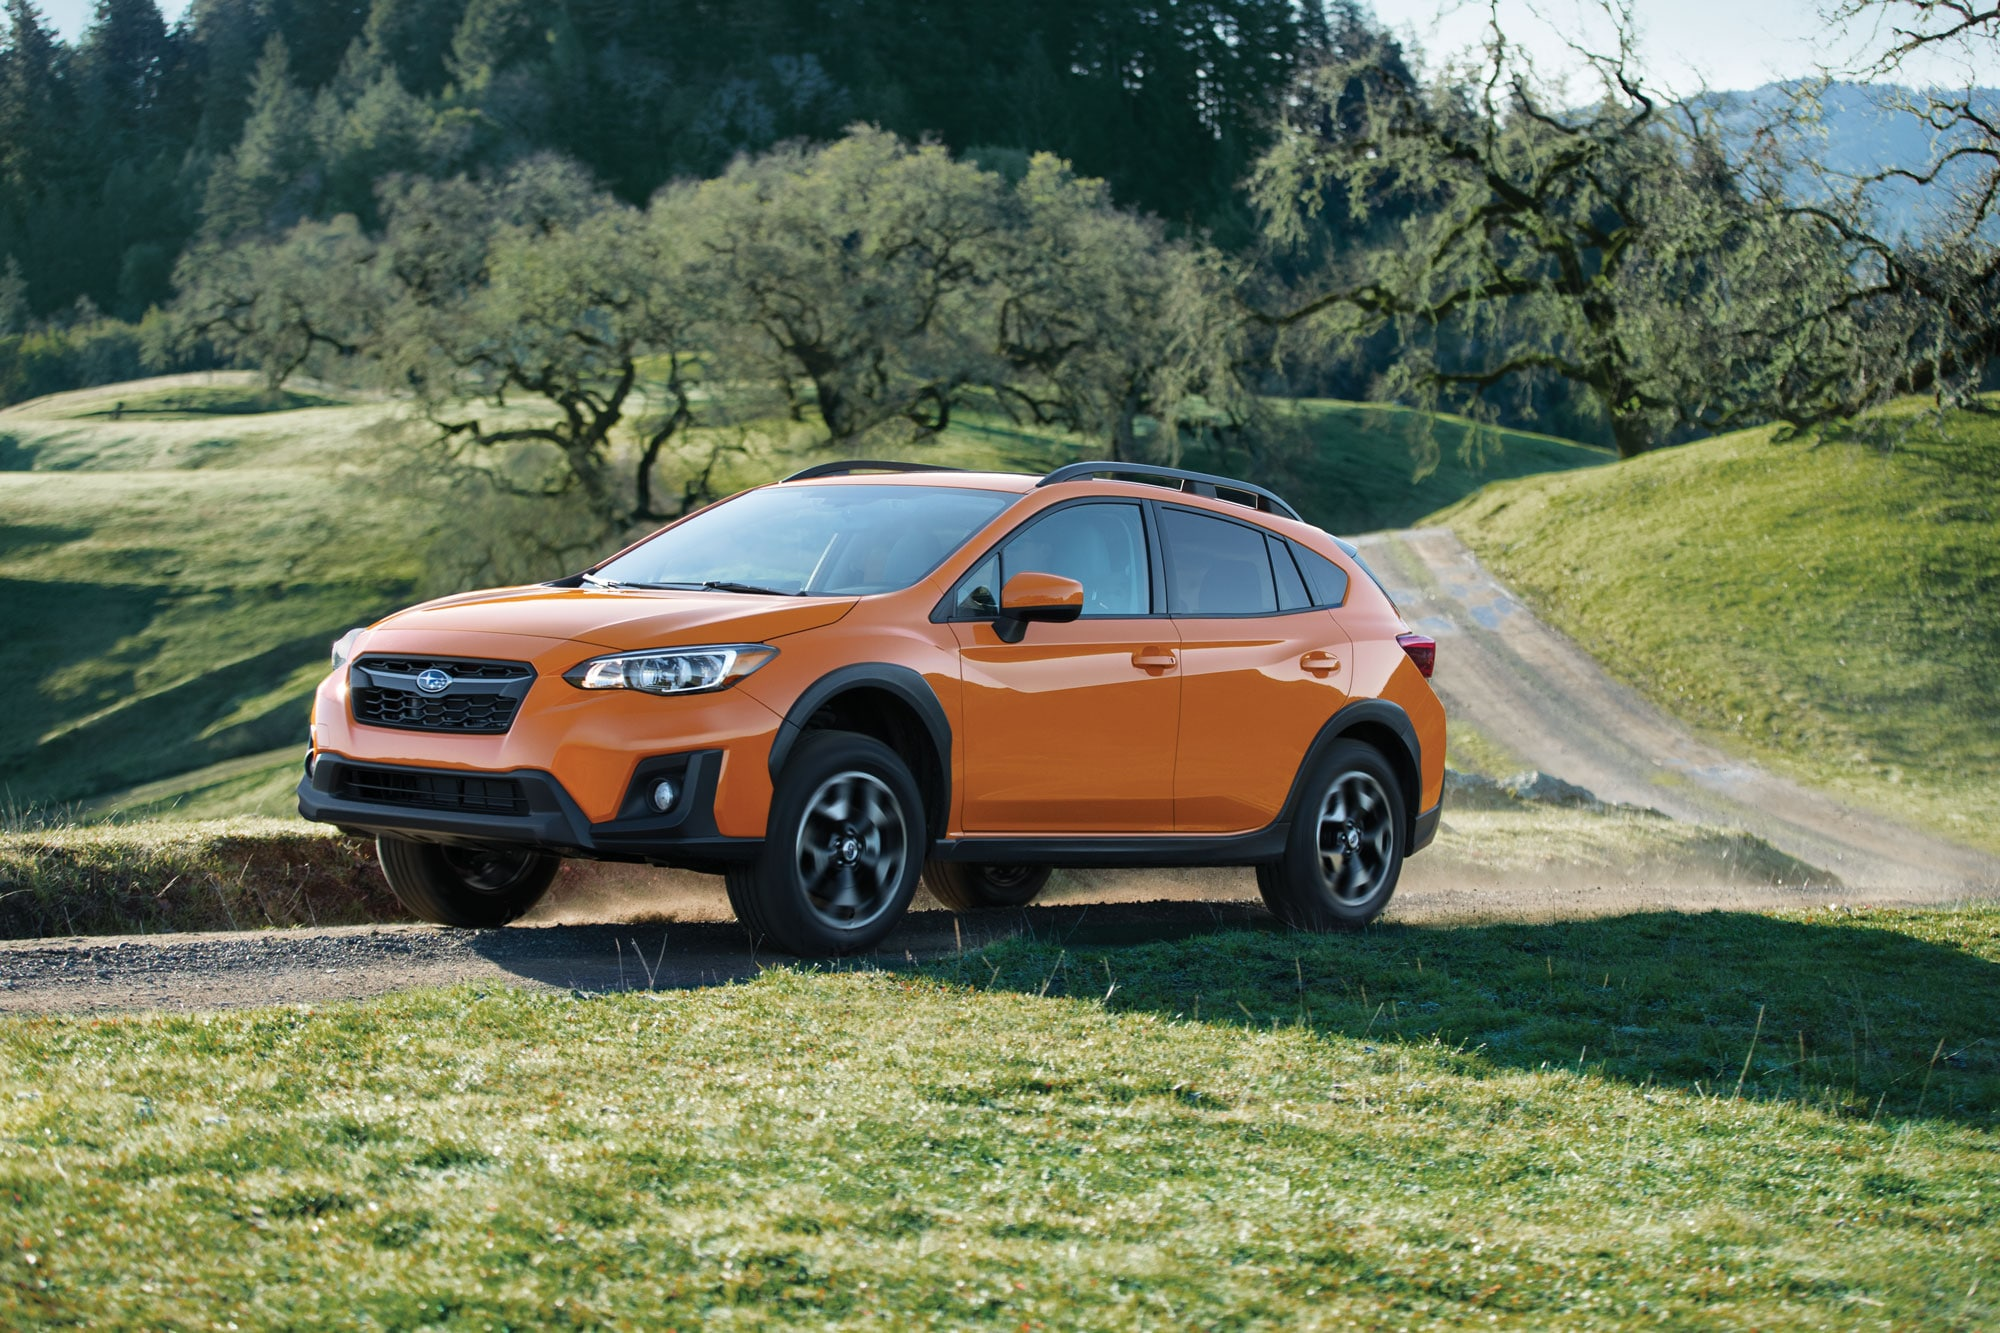 Subaru Of Pembroke Pines >> The 2019 Subaru Crosstrek Subaru Of Pembroke Pines Pembroke